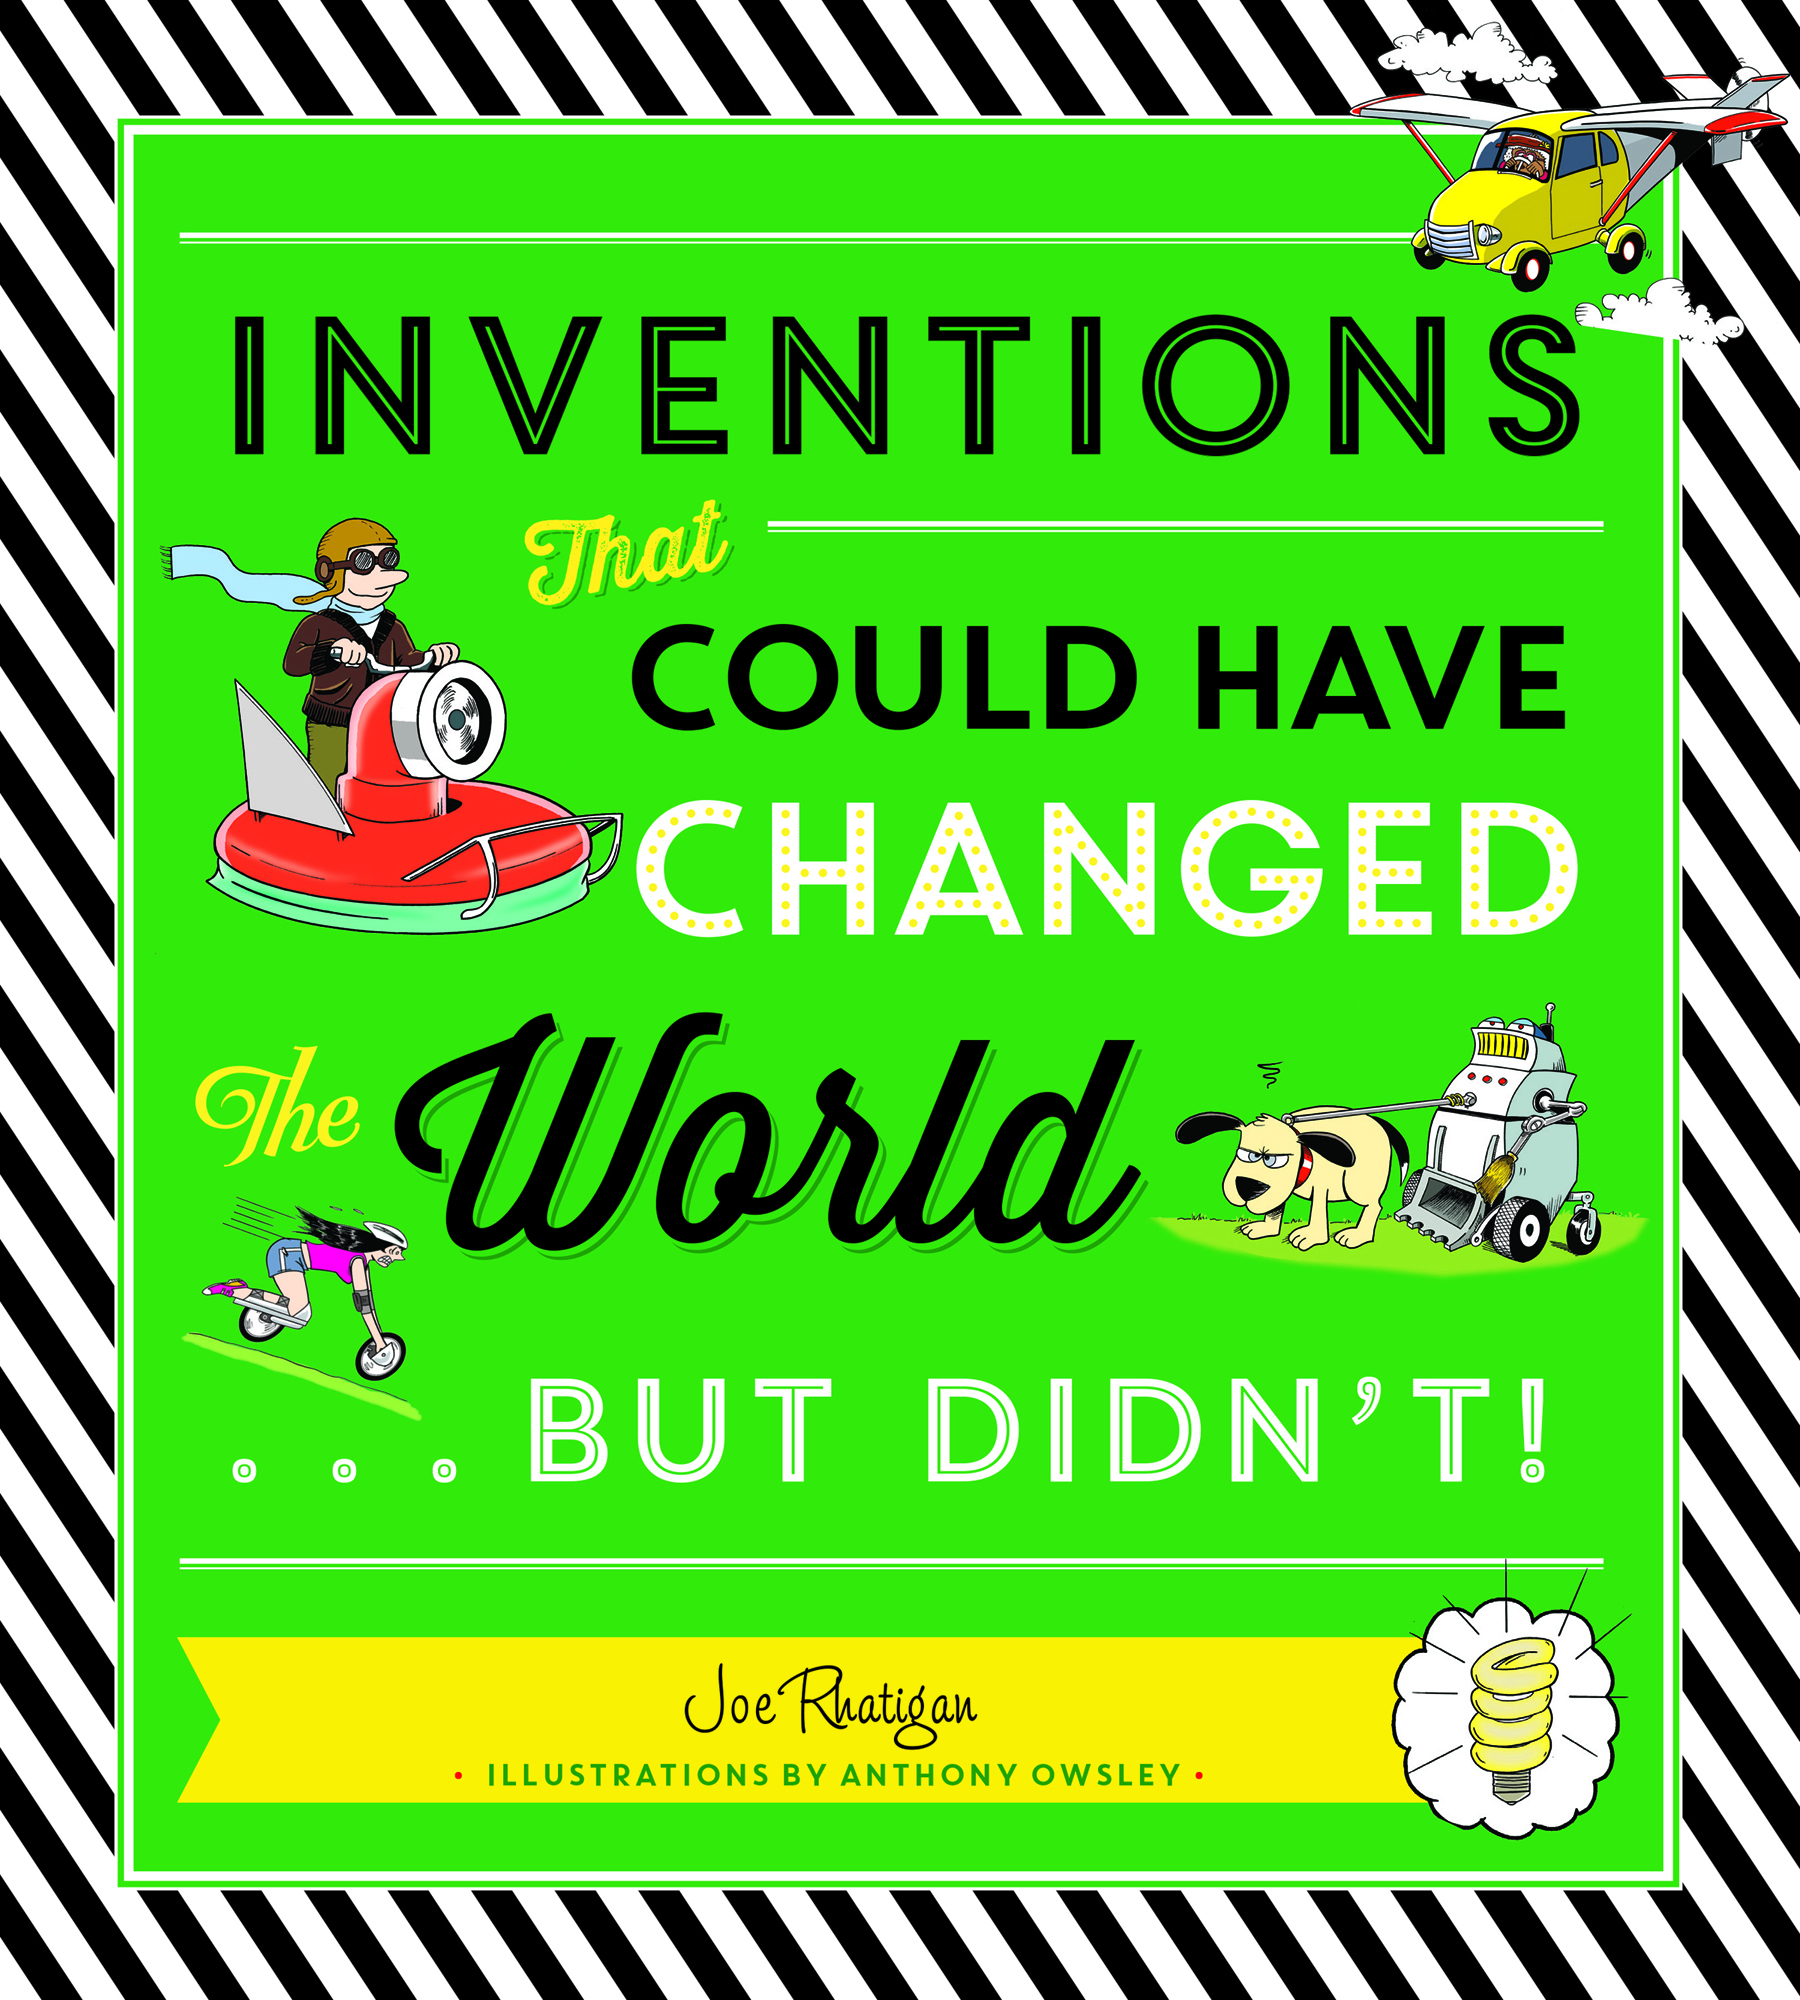 Inventions That Could Have Changed the World…But Didn't!